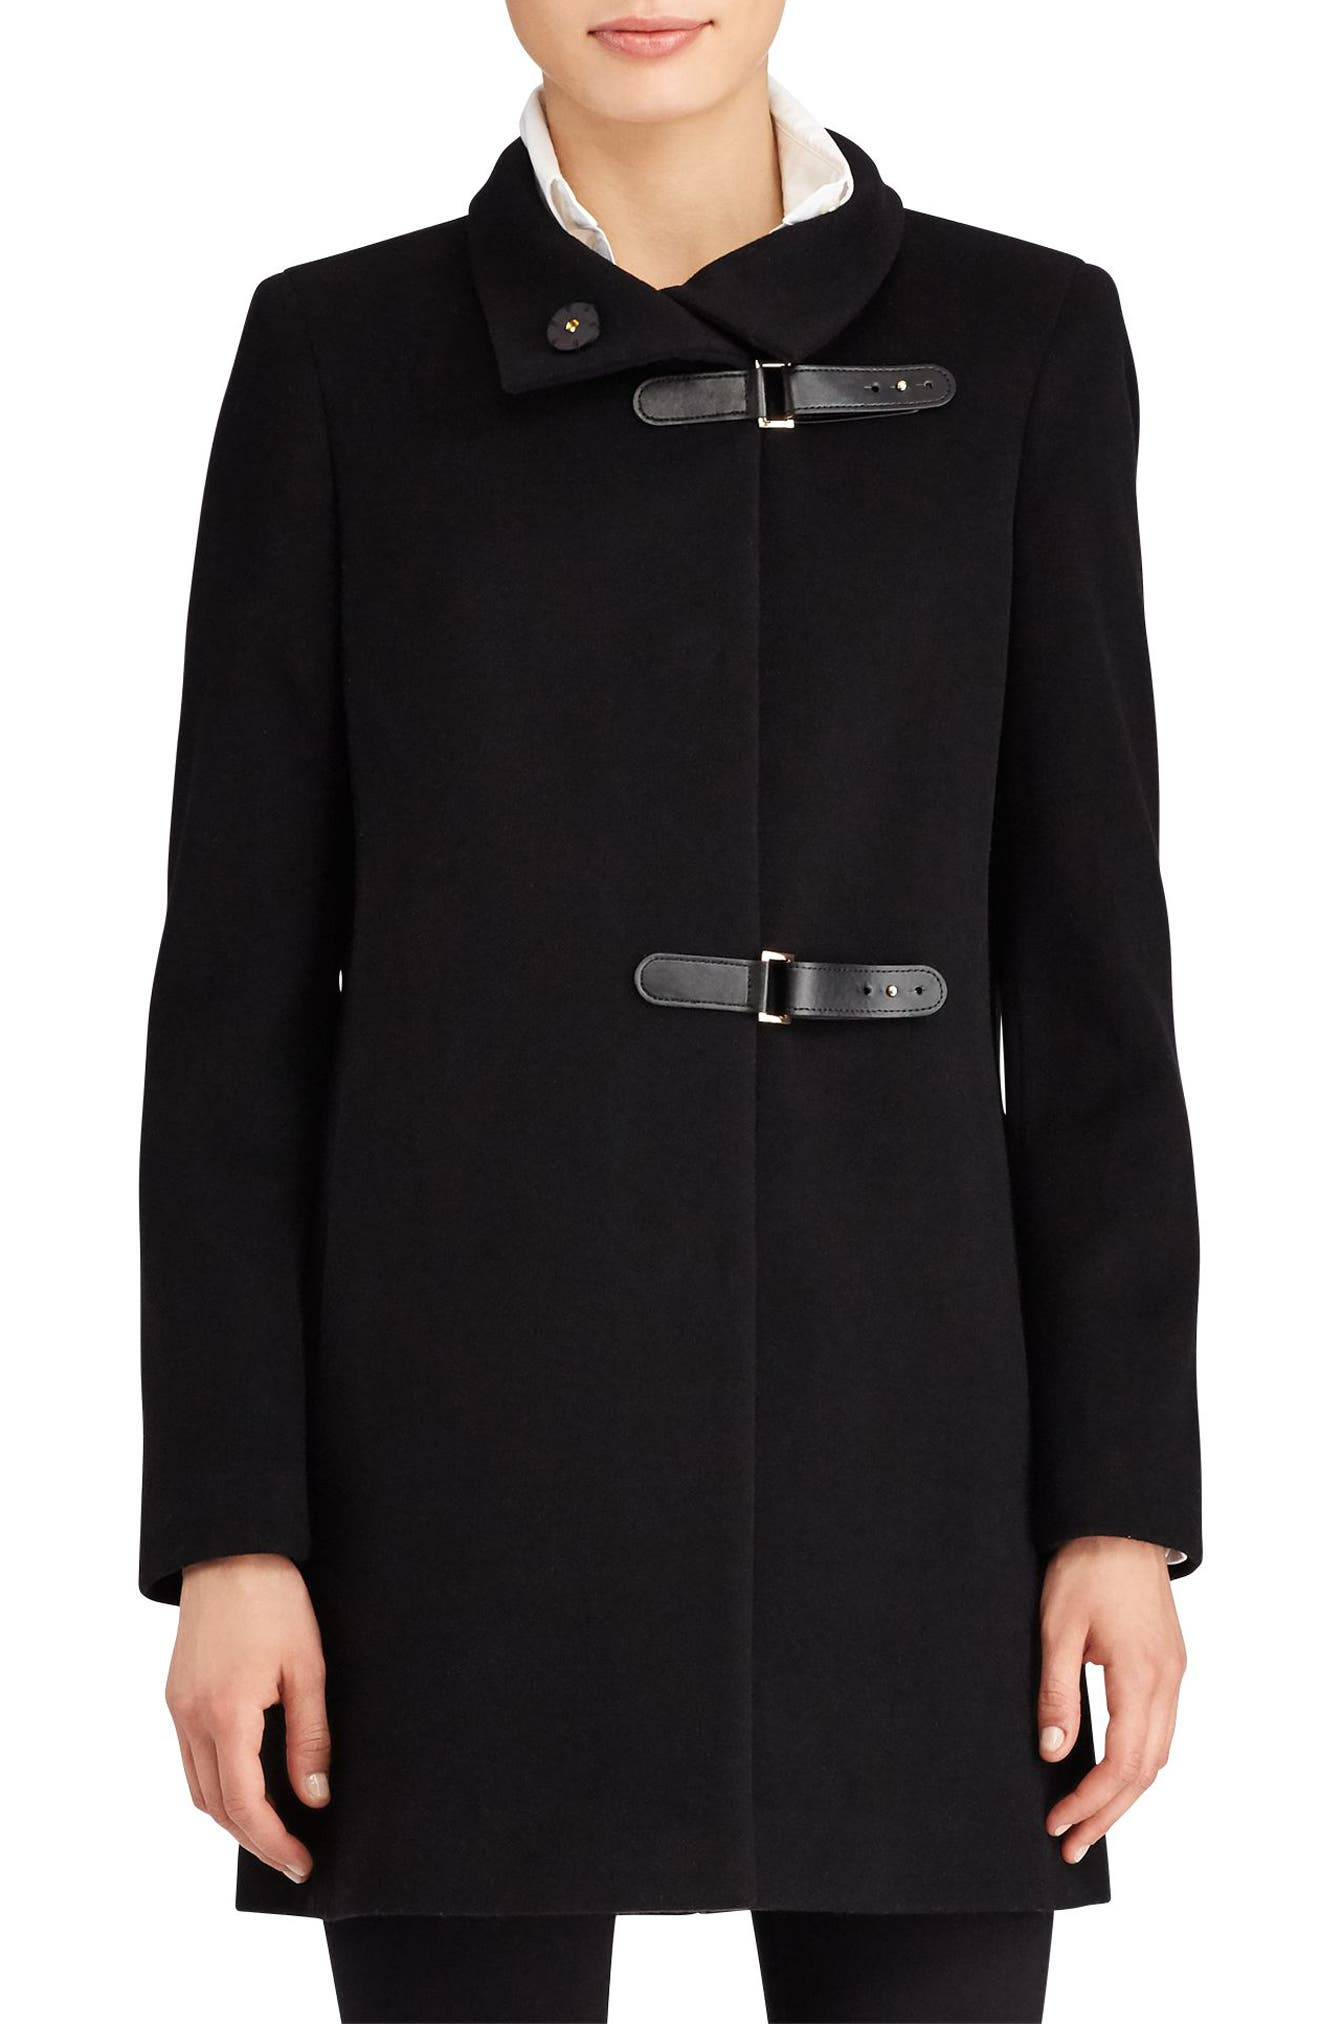 Peacoat Coats & Jackets for Women | Nordstrom | Nordstrom